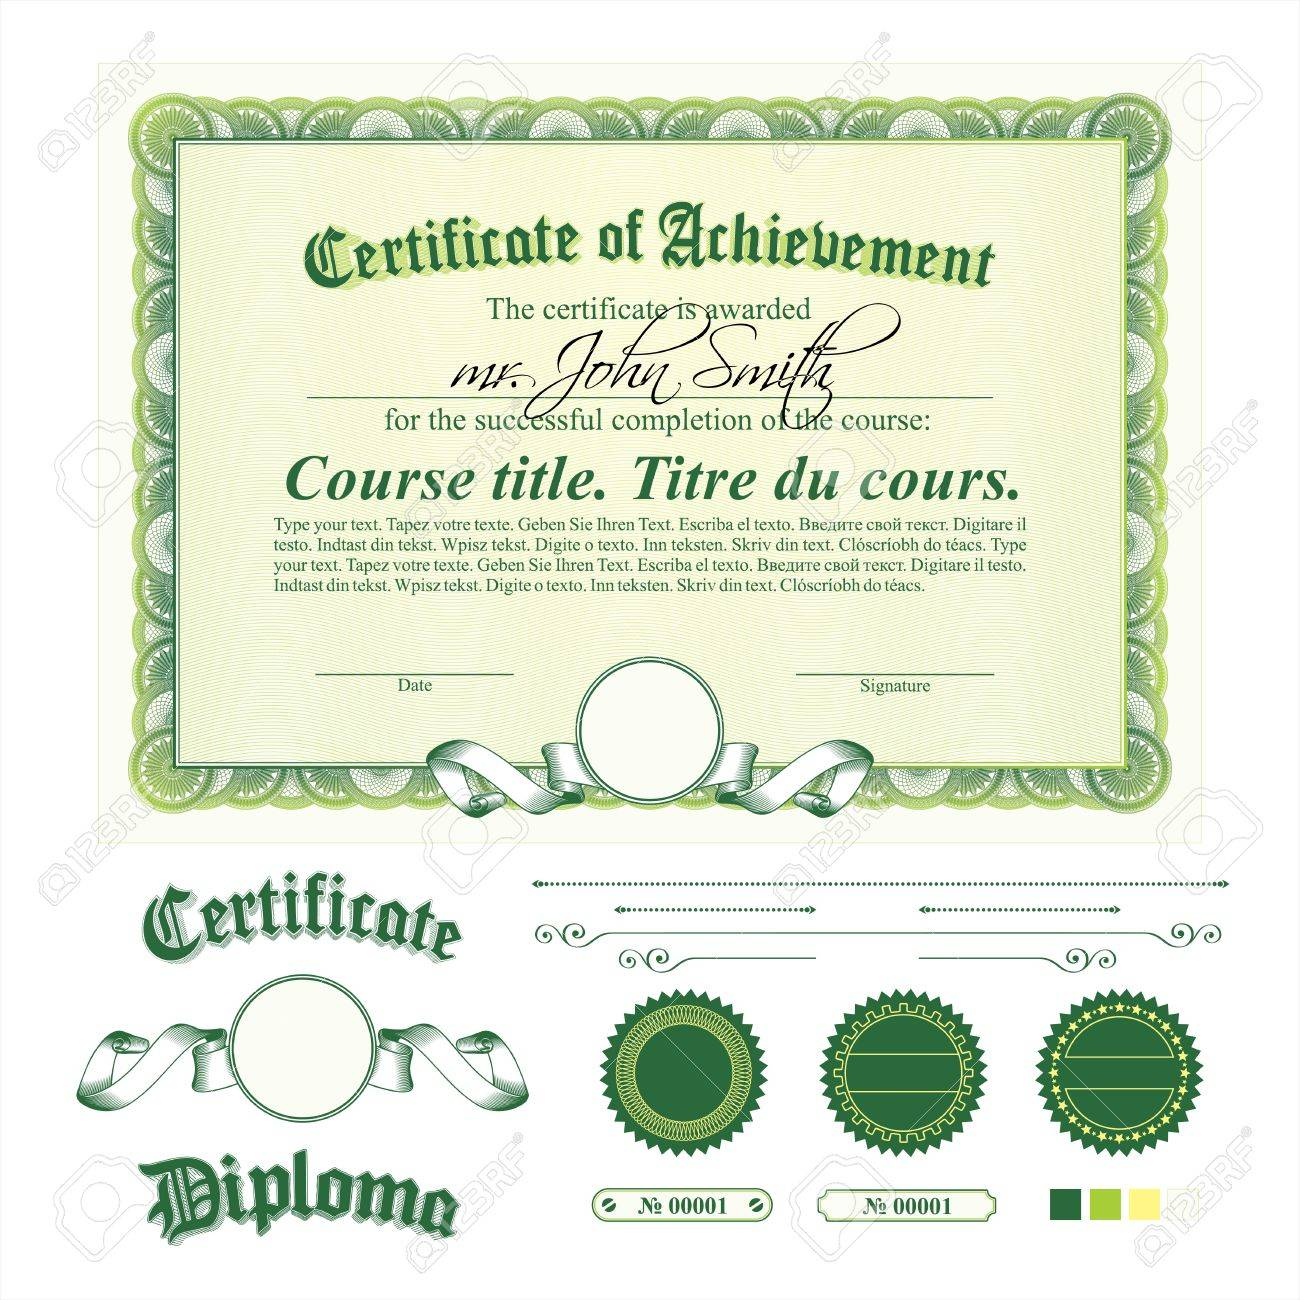 Green certificate template. Horizontal. Additional design elements. Stock Vector - 18052360